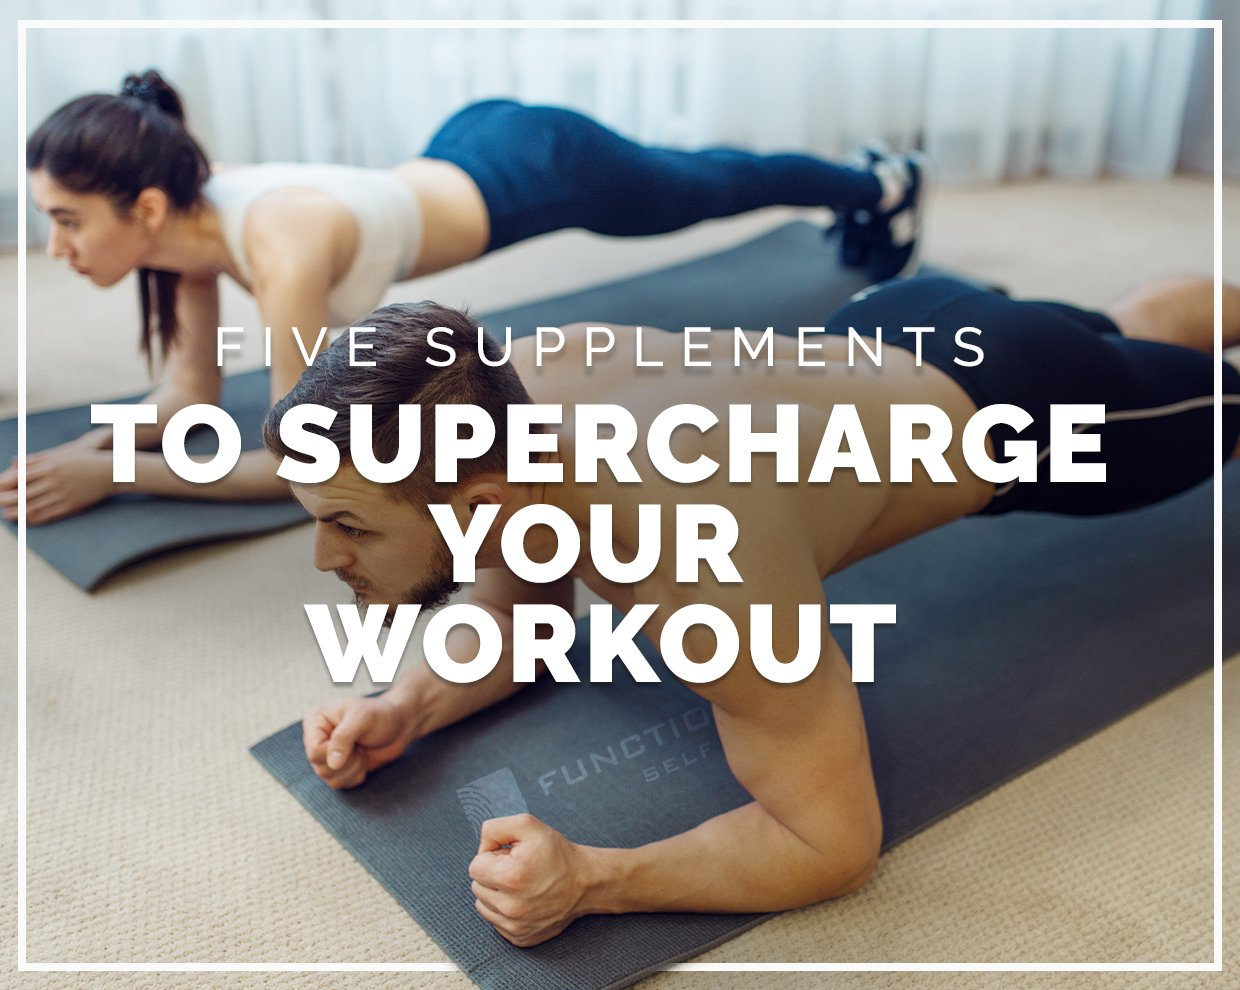 5 supplements to supercharge your workout